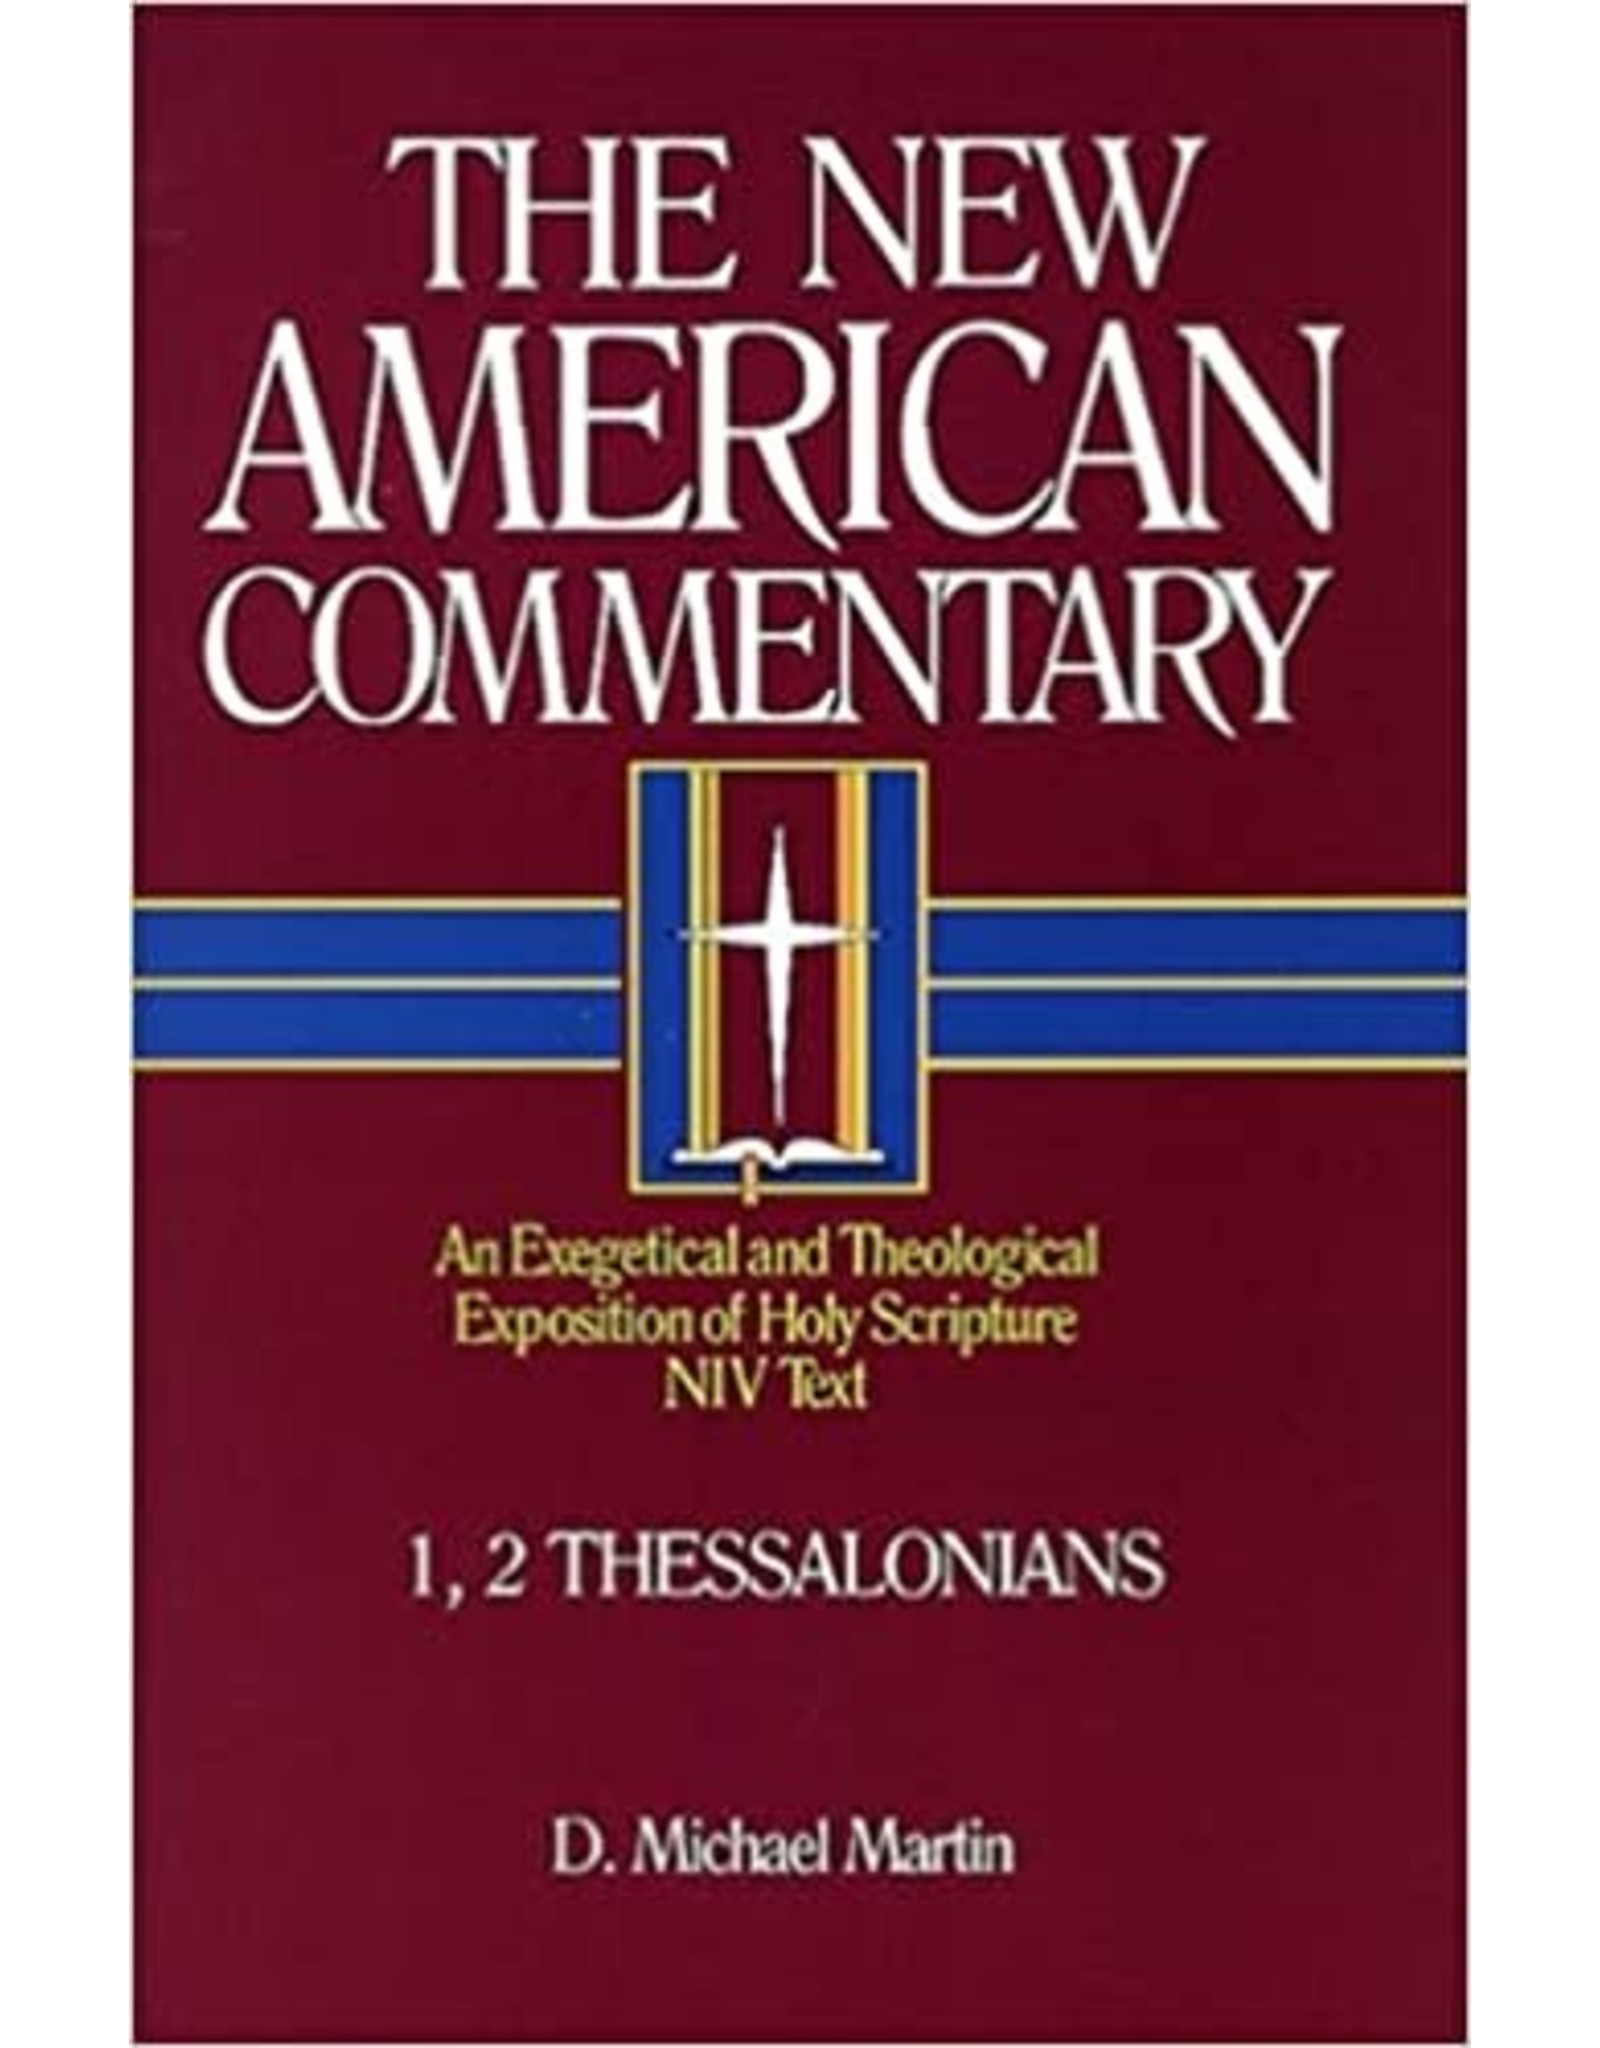 Martin 1, 2 Thessalonians: An Exegetical and Theological Exposition of Holy Scripture (The New American Commentary)